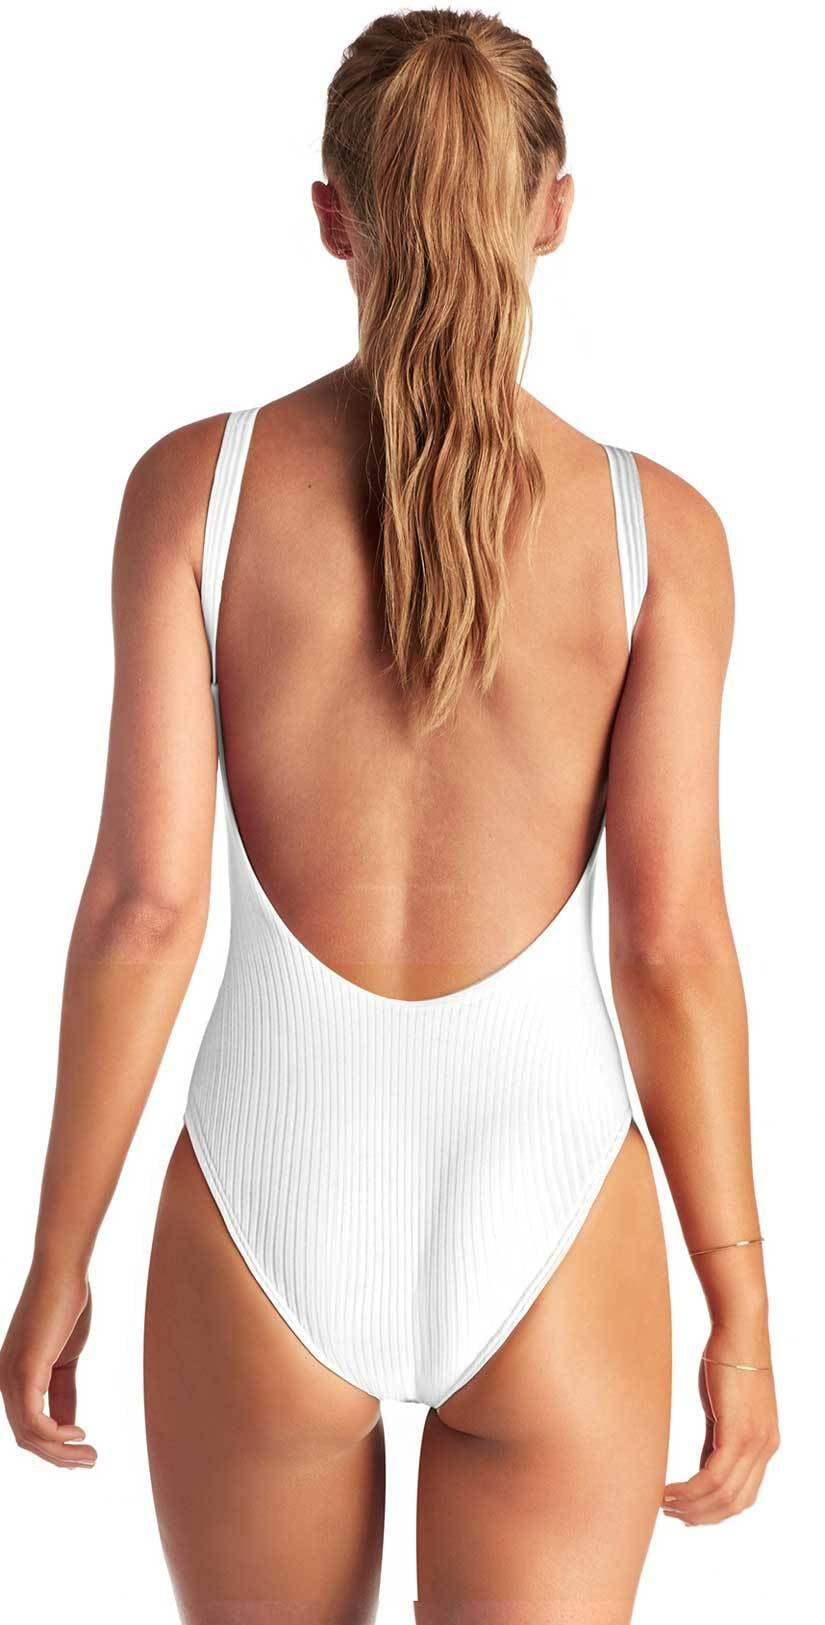 Vitamin A Eco Rib Leah Full Coverage One Piece in White 76MF ERW